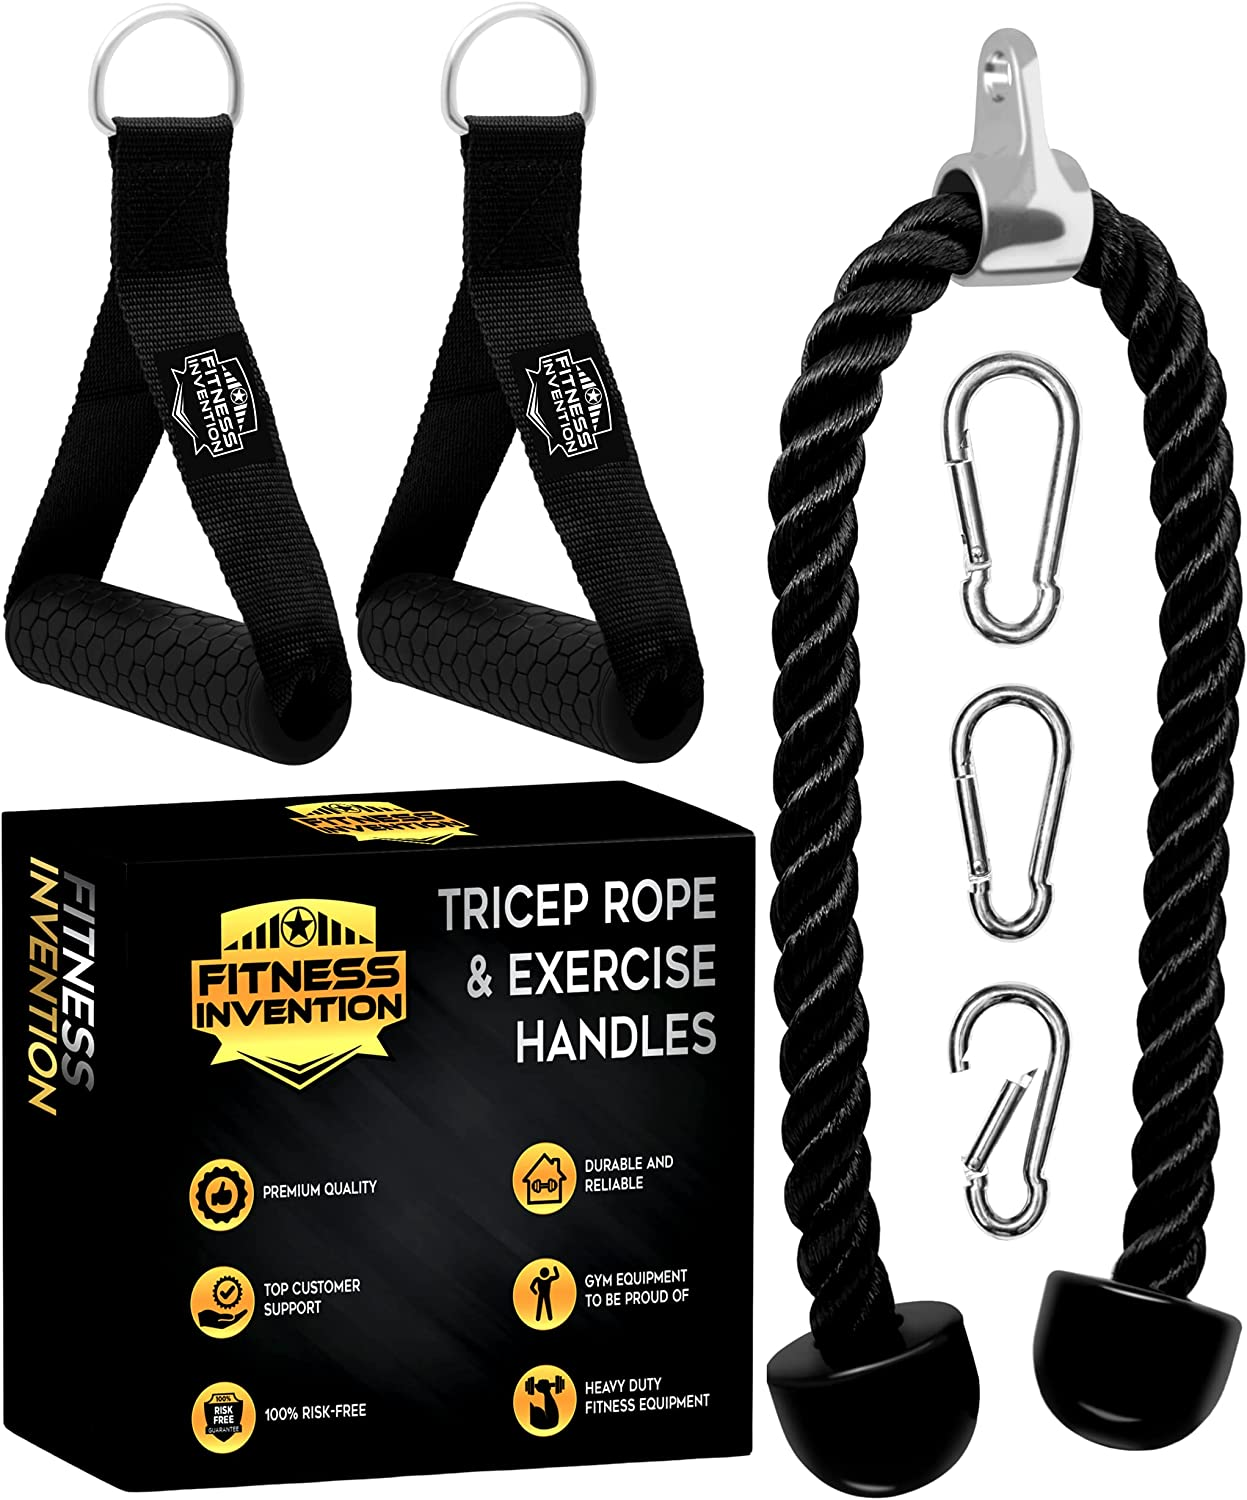 allbingo Pro Tricep Rope Cable Machine Handles Ankle Strap with Carabiners Compatible for Home Gym Exercise Pulldown Bowflex Cable Machine System